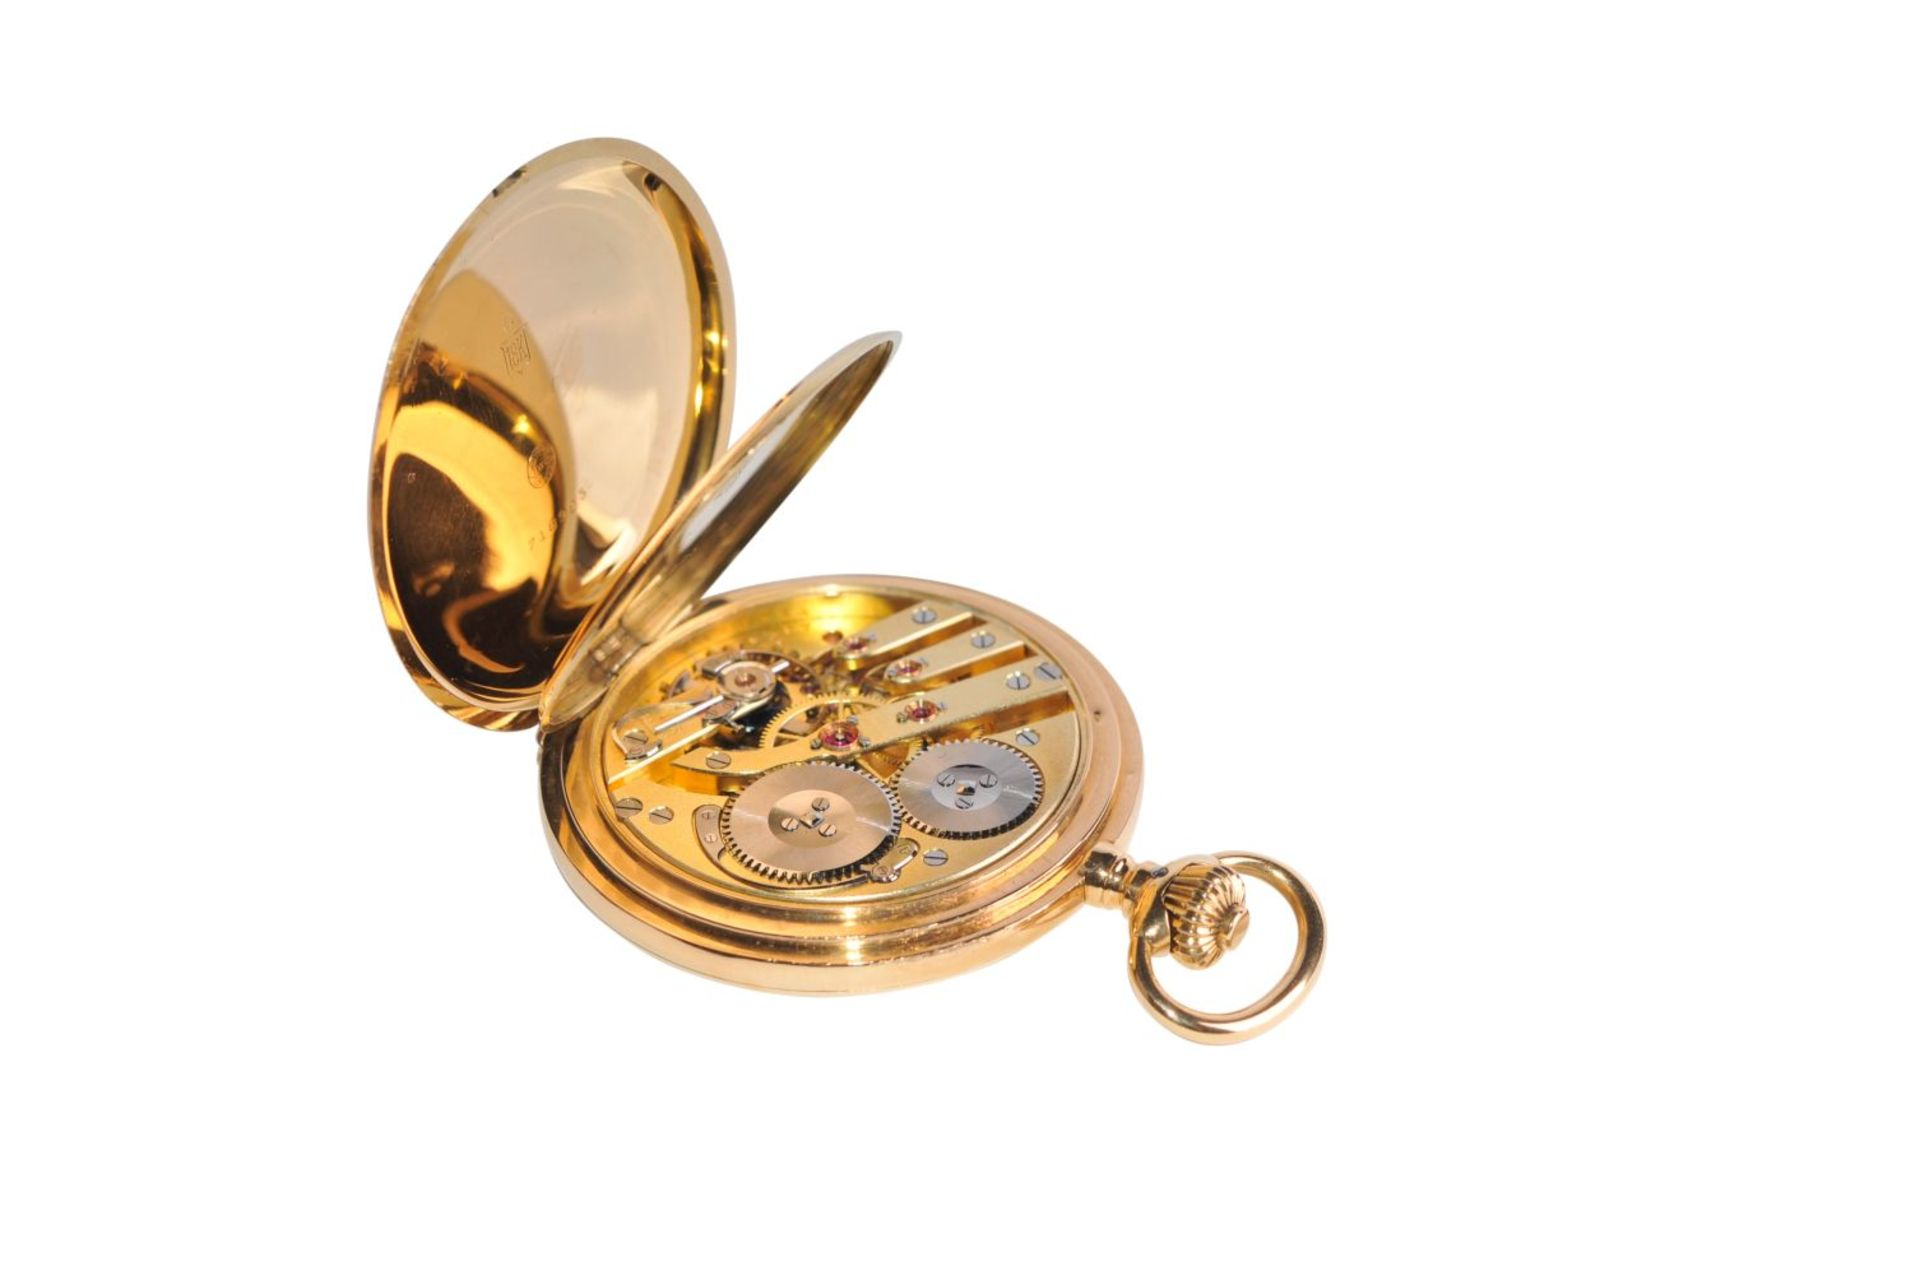 Los 77 - International WatchHeavy massive pocket watch with double Case engraved with AE gold-plated dial,